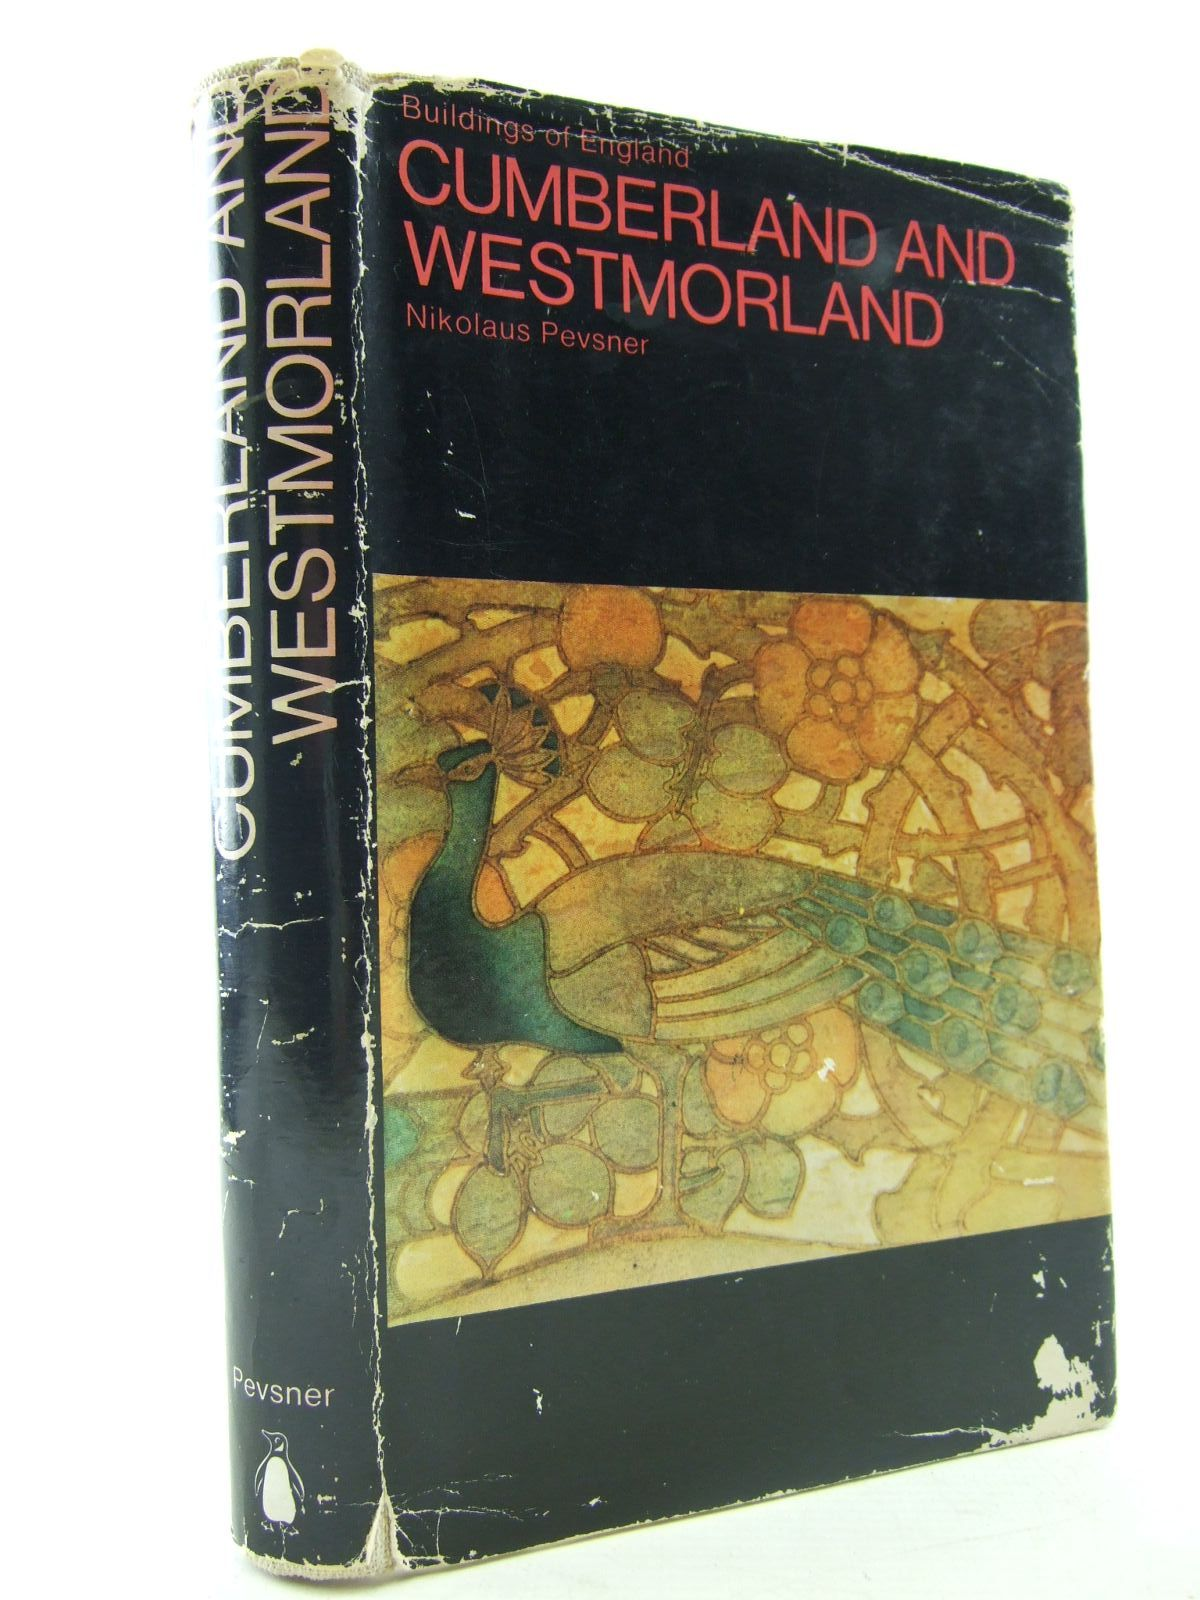 Photo of CUMBERLAND AND WESTMORLAND (BUILDINGS OF ENGLAND) written by Pevsner, Nikolaus published by Penguin (STOCK CODE: 1706829)  for sale by Stella & Rose's Books